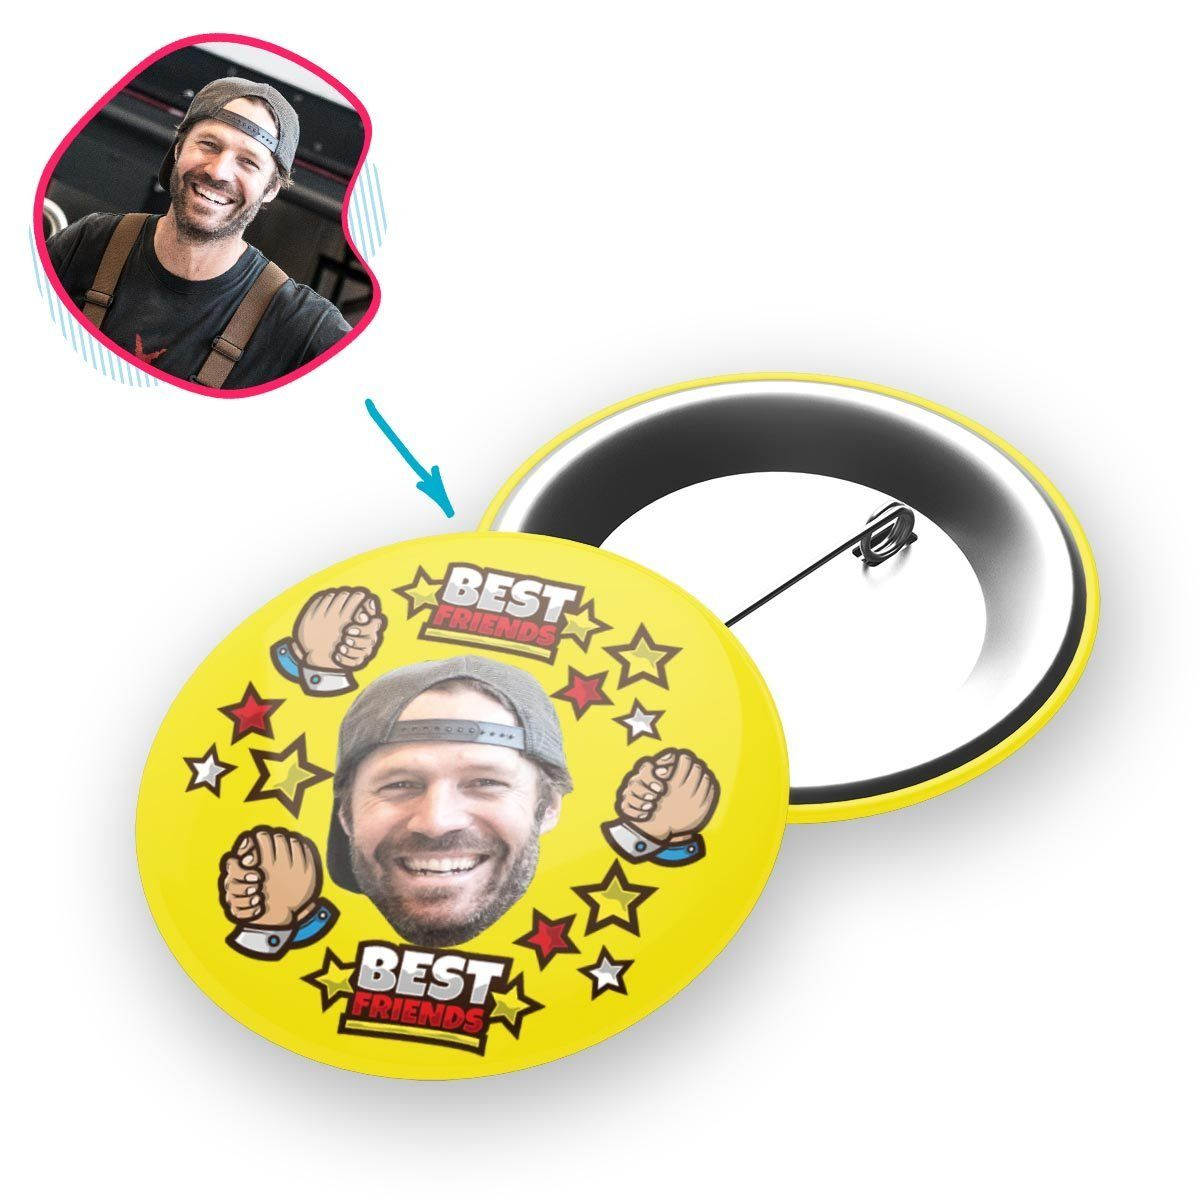 yellow Best Friends pin personalized with photo of face printed on it